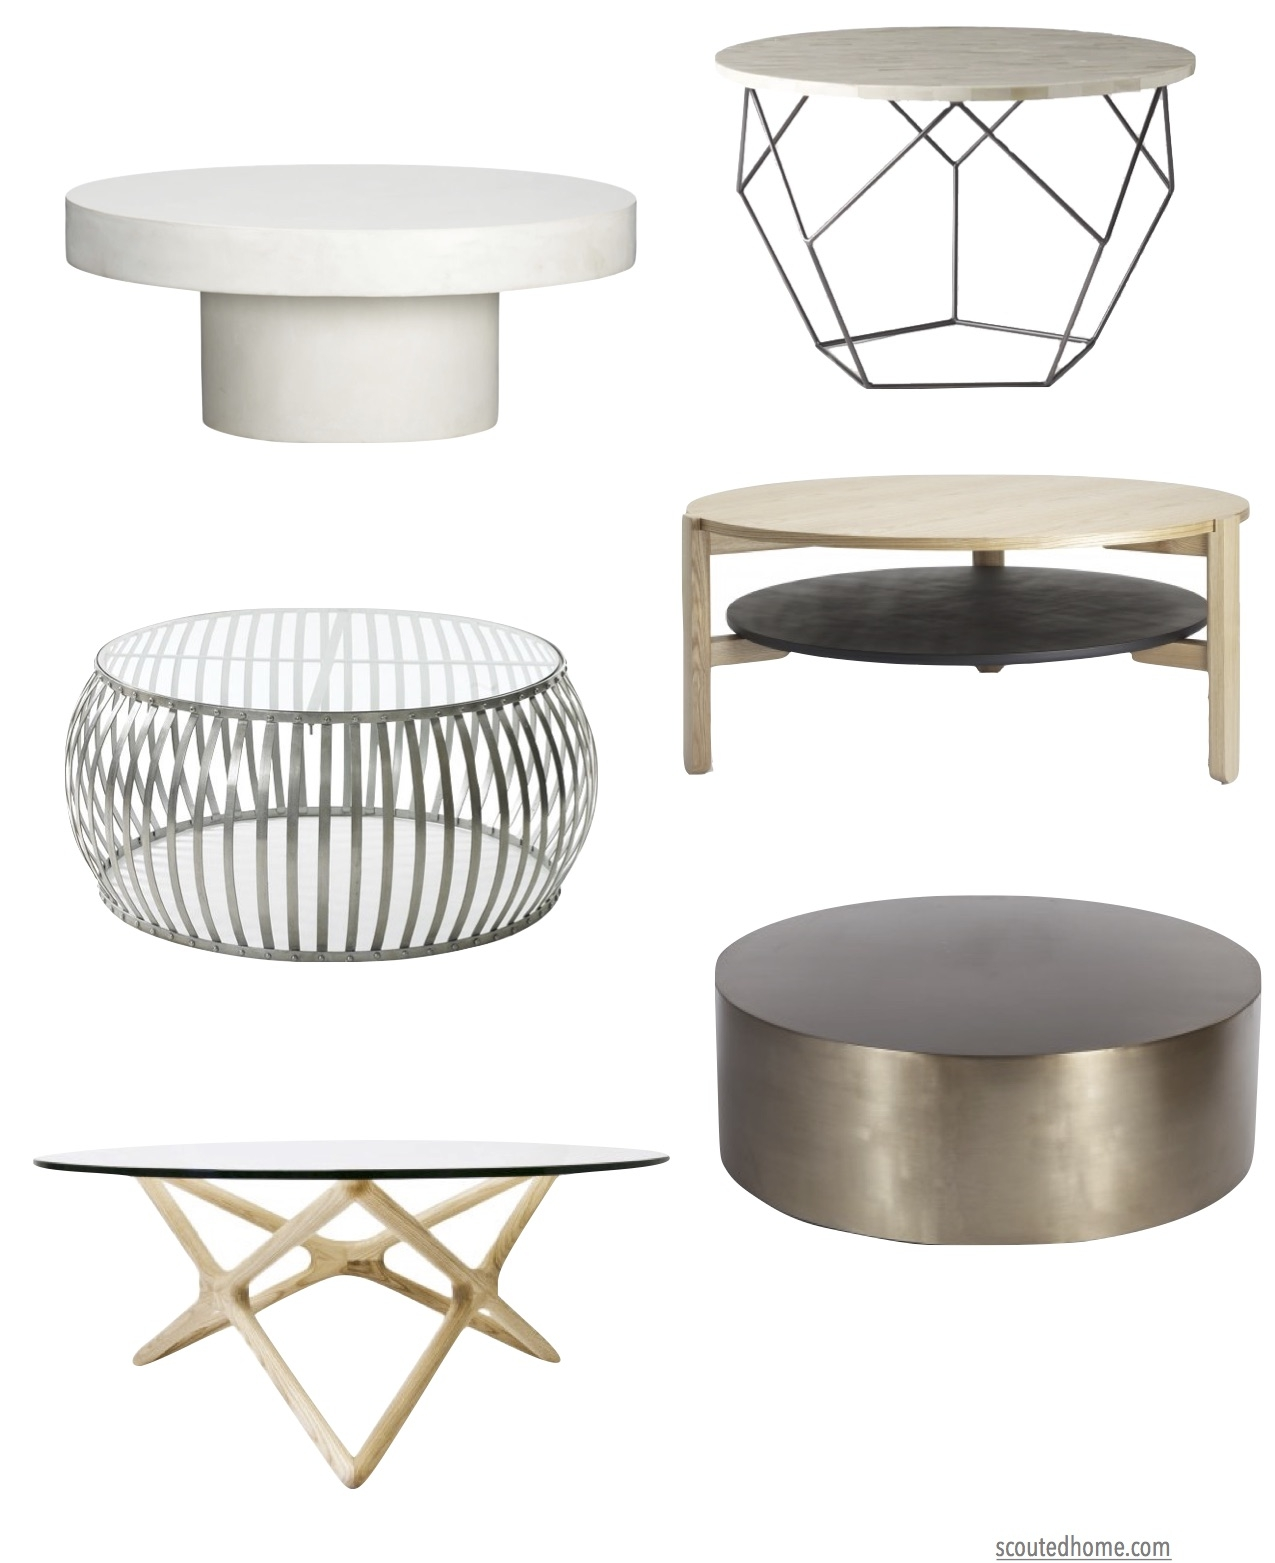 Top picks for our favorite round coffee tables